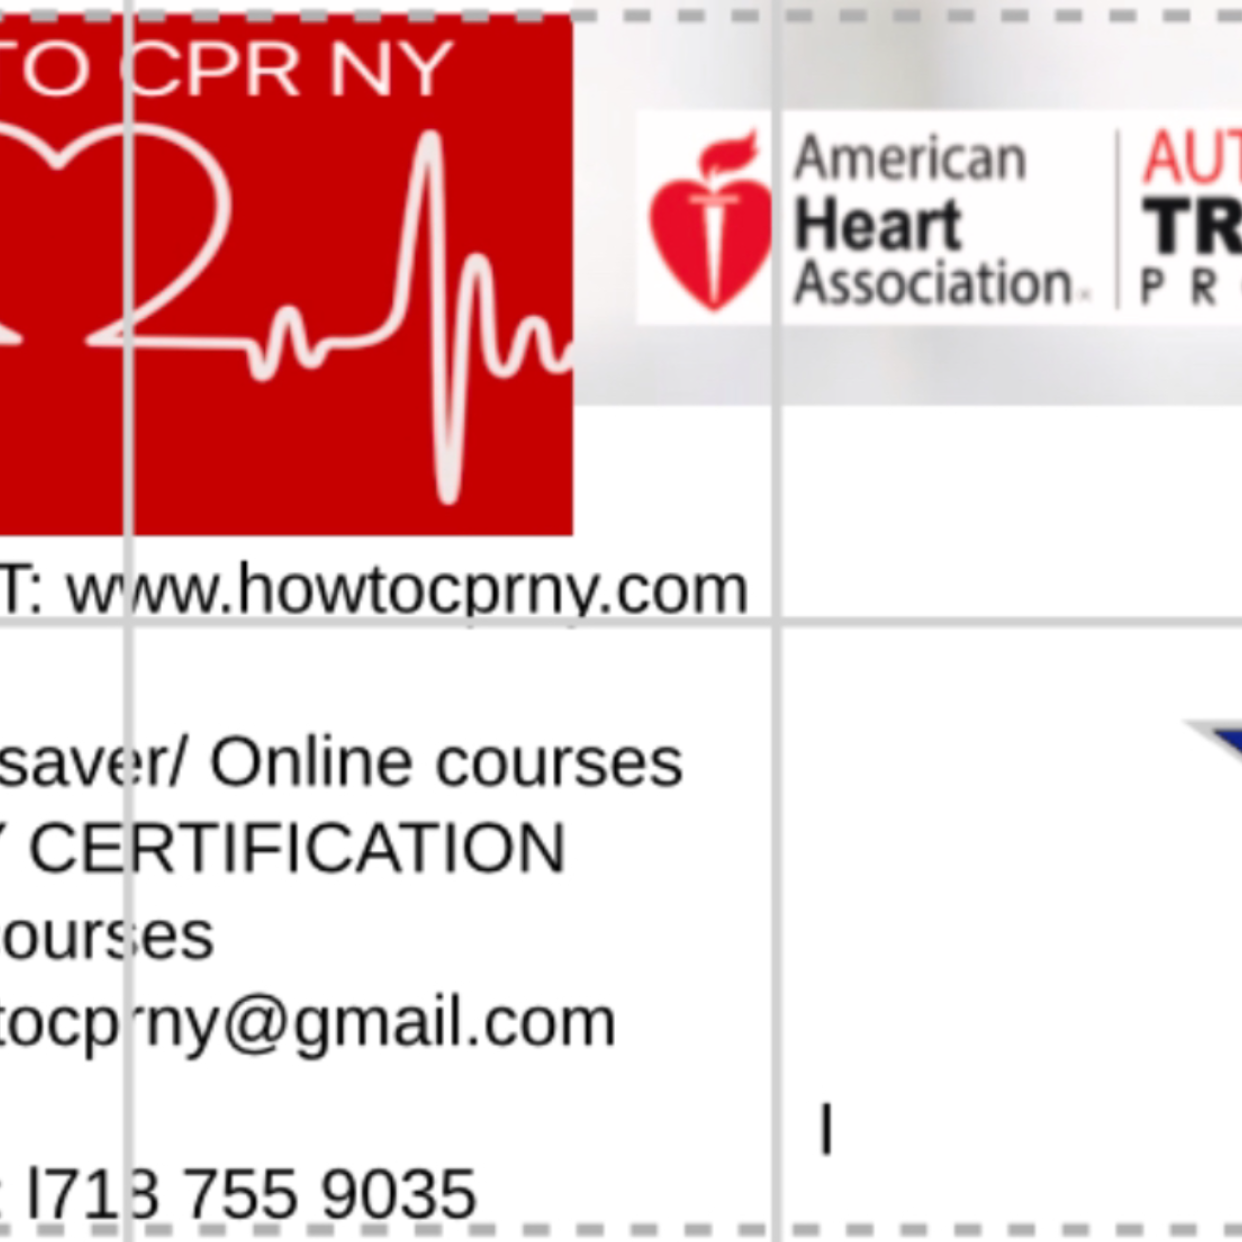 How To CPR NY